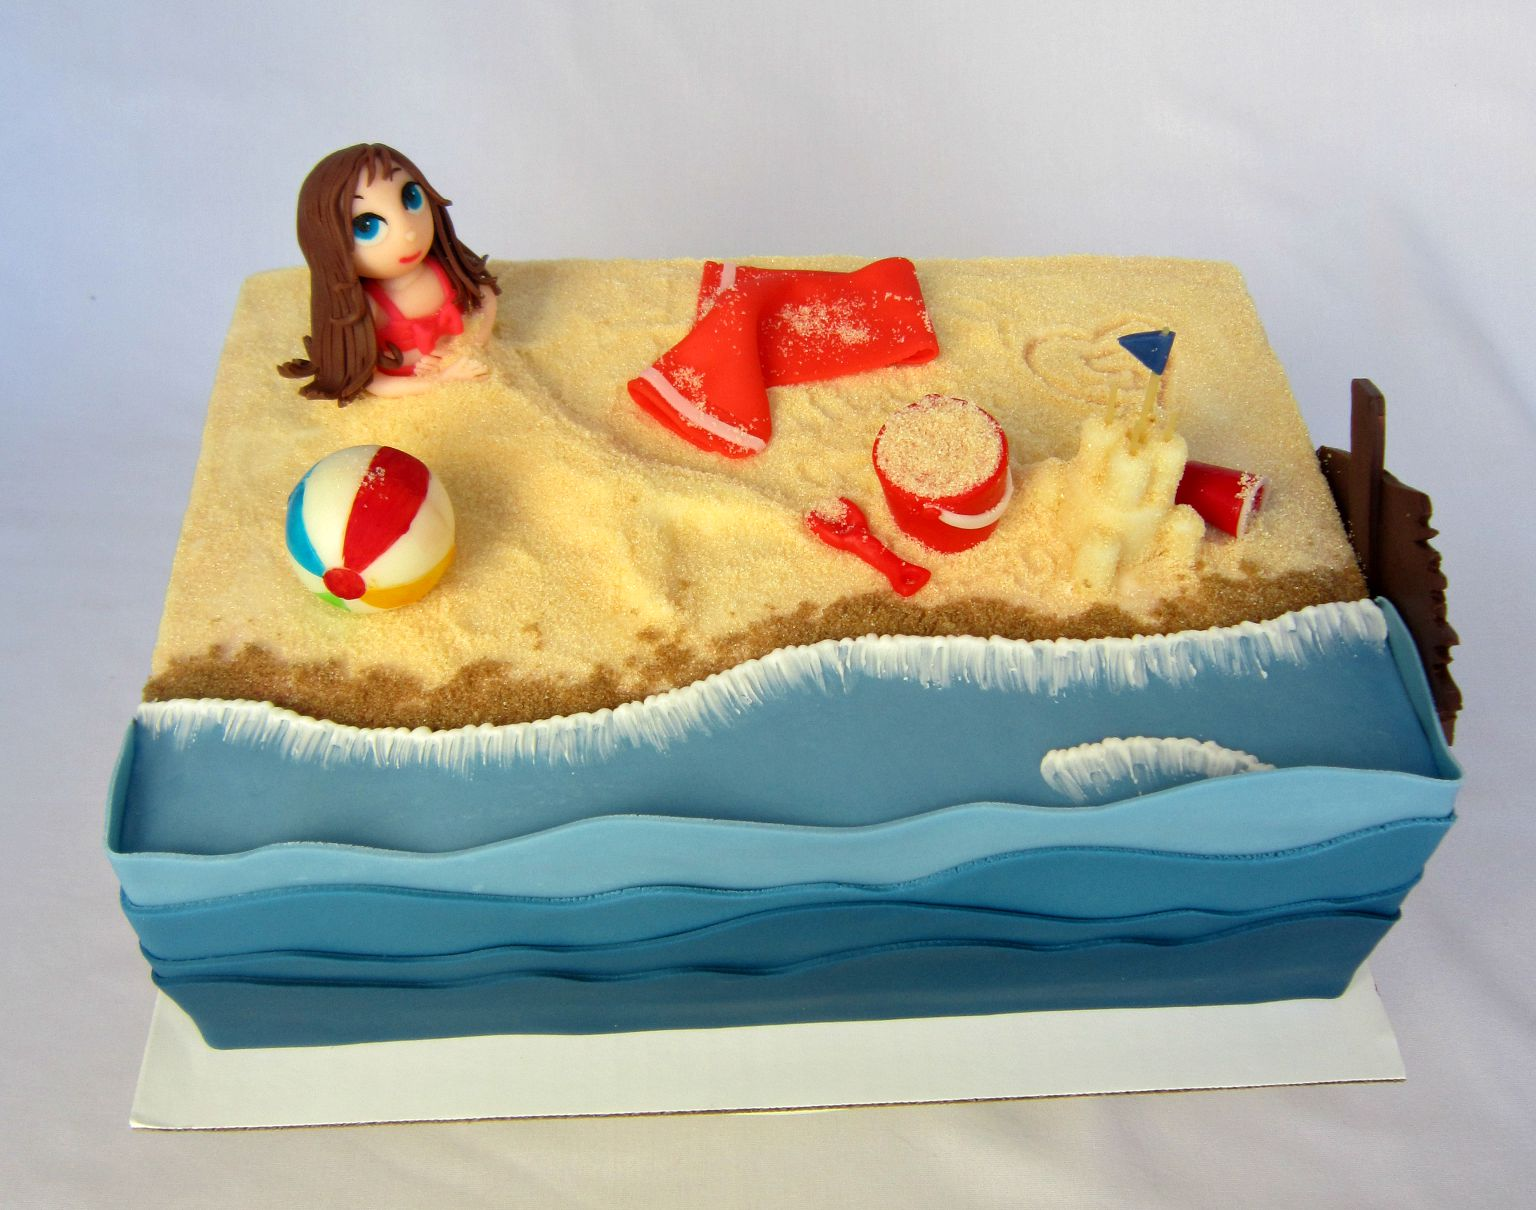 Delectable Cakes Little Girl Beach Party Birthday Cake